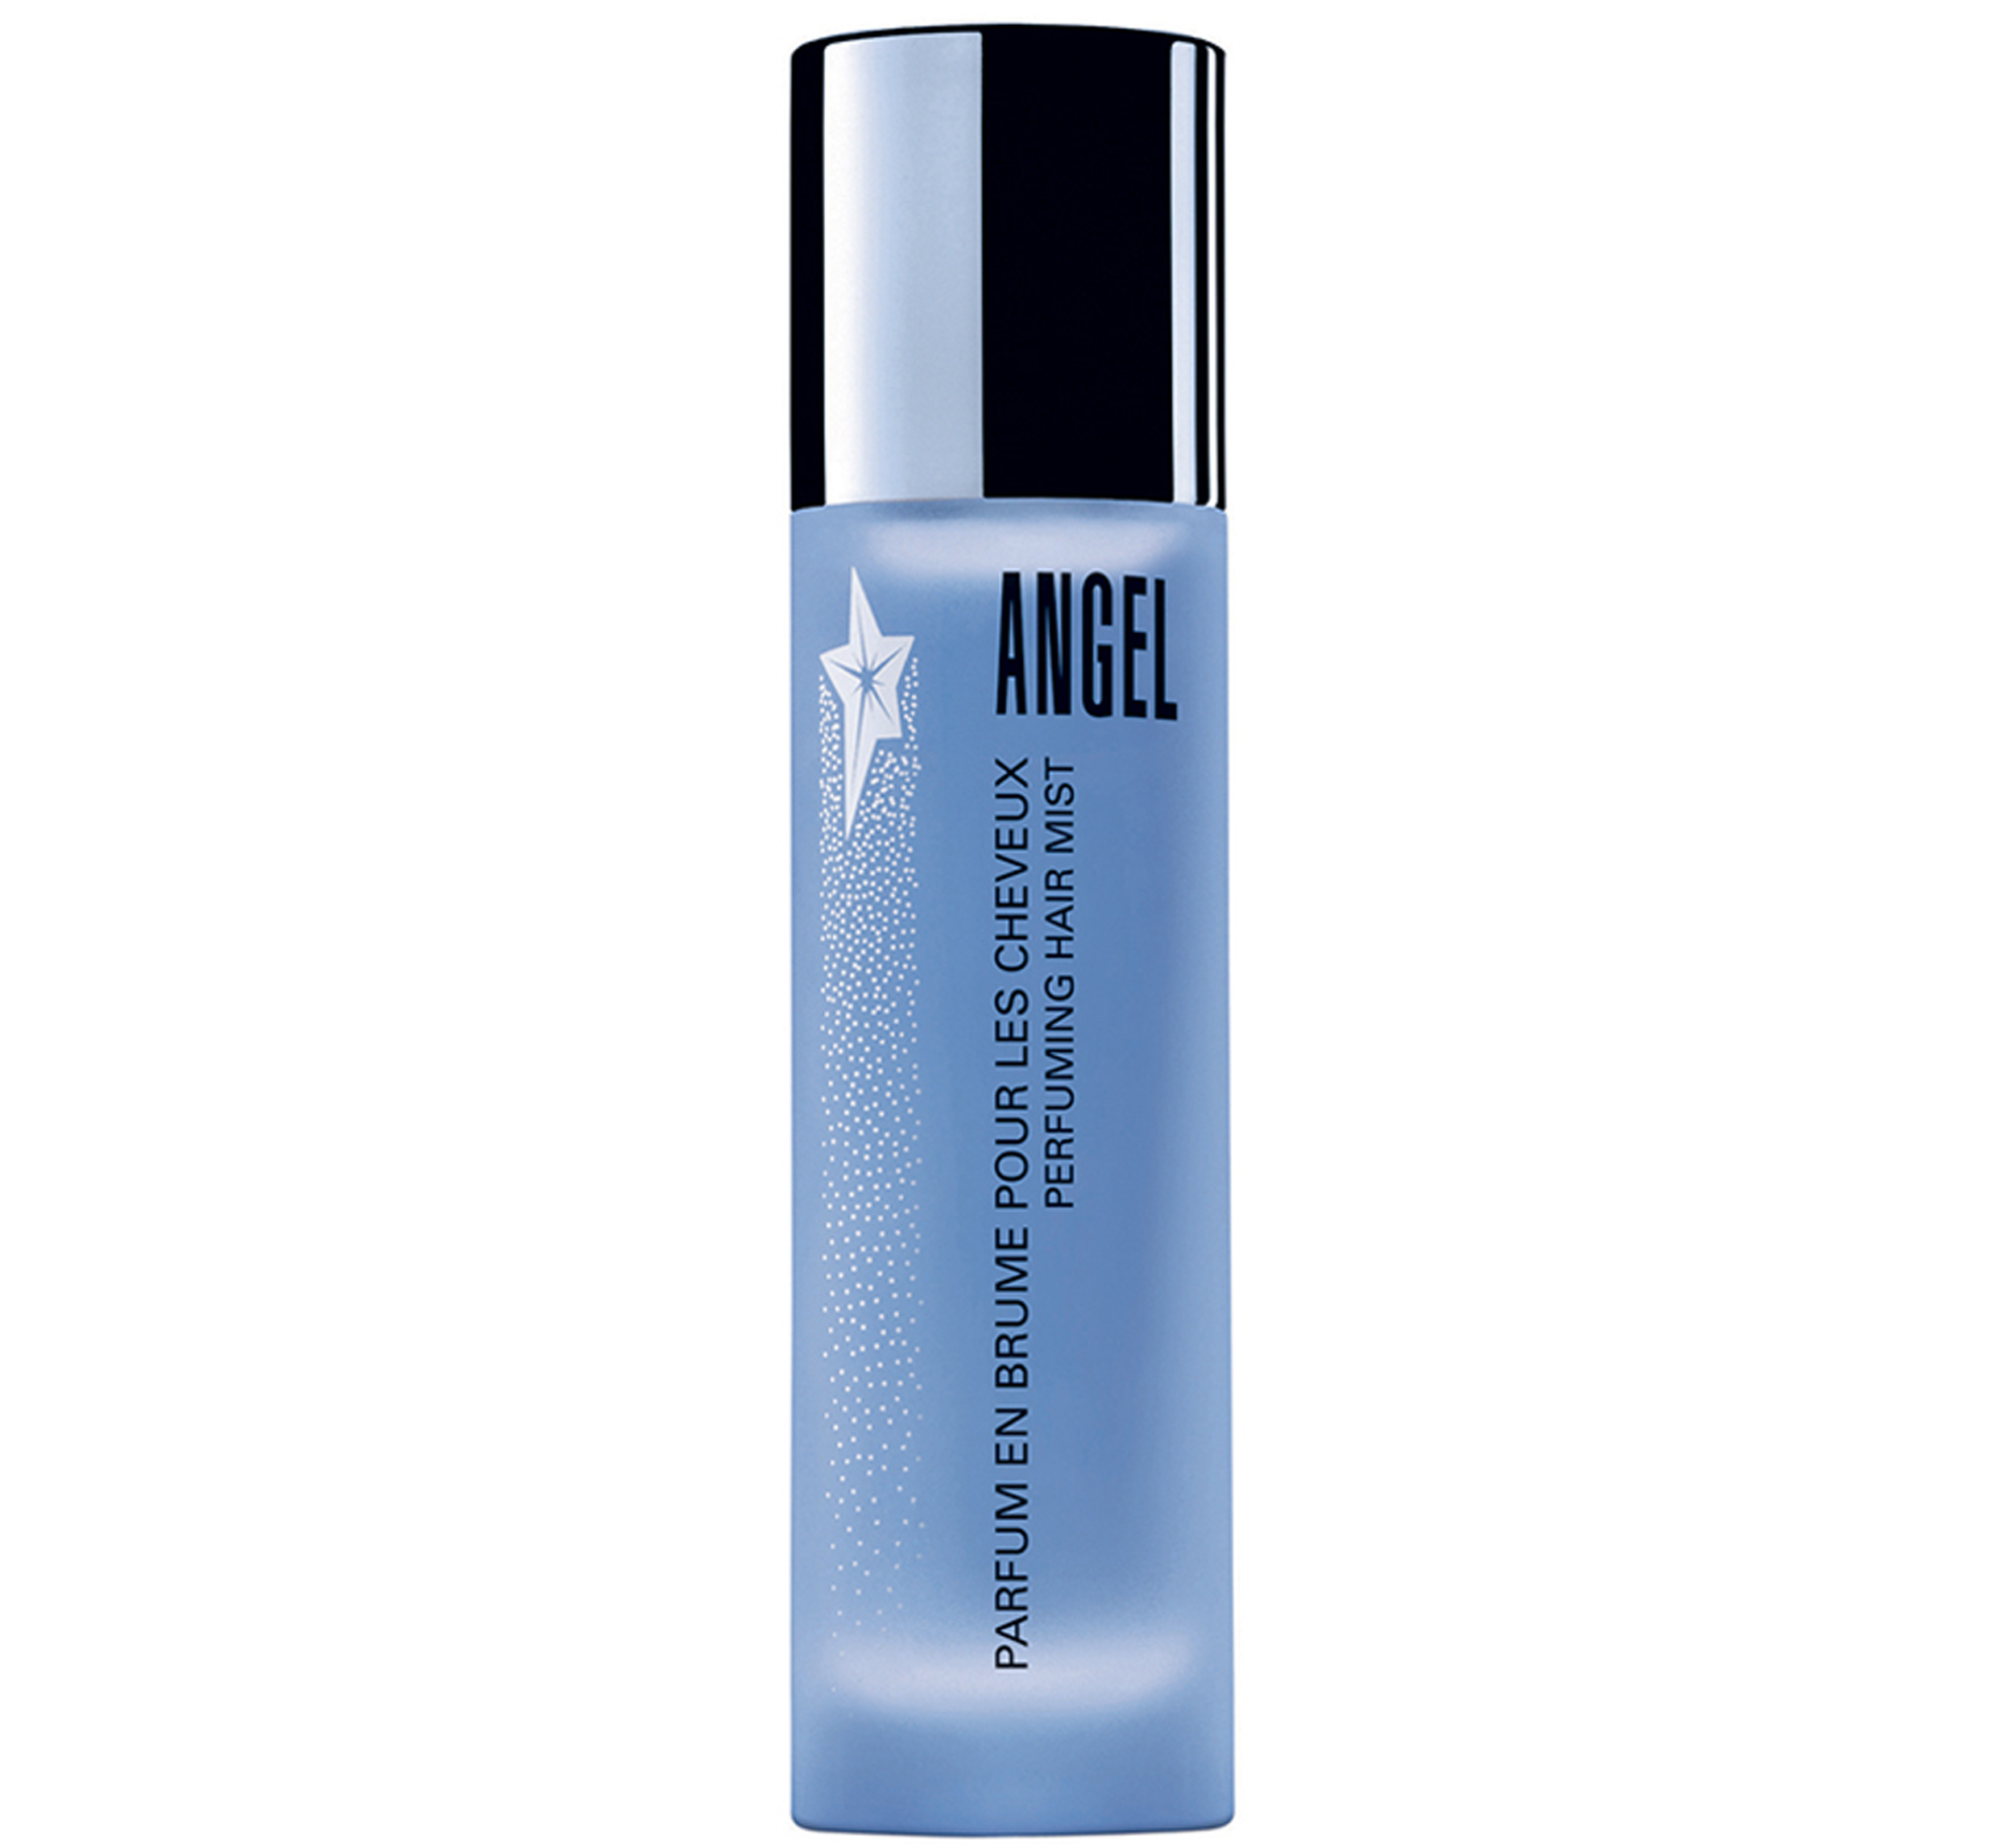 Thierry Mugler Angel Hair Mist for her, £25/AED111.24, The Perfume Shop